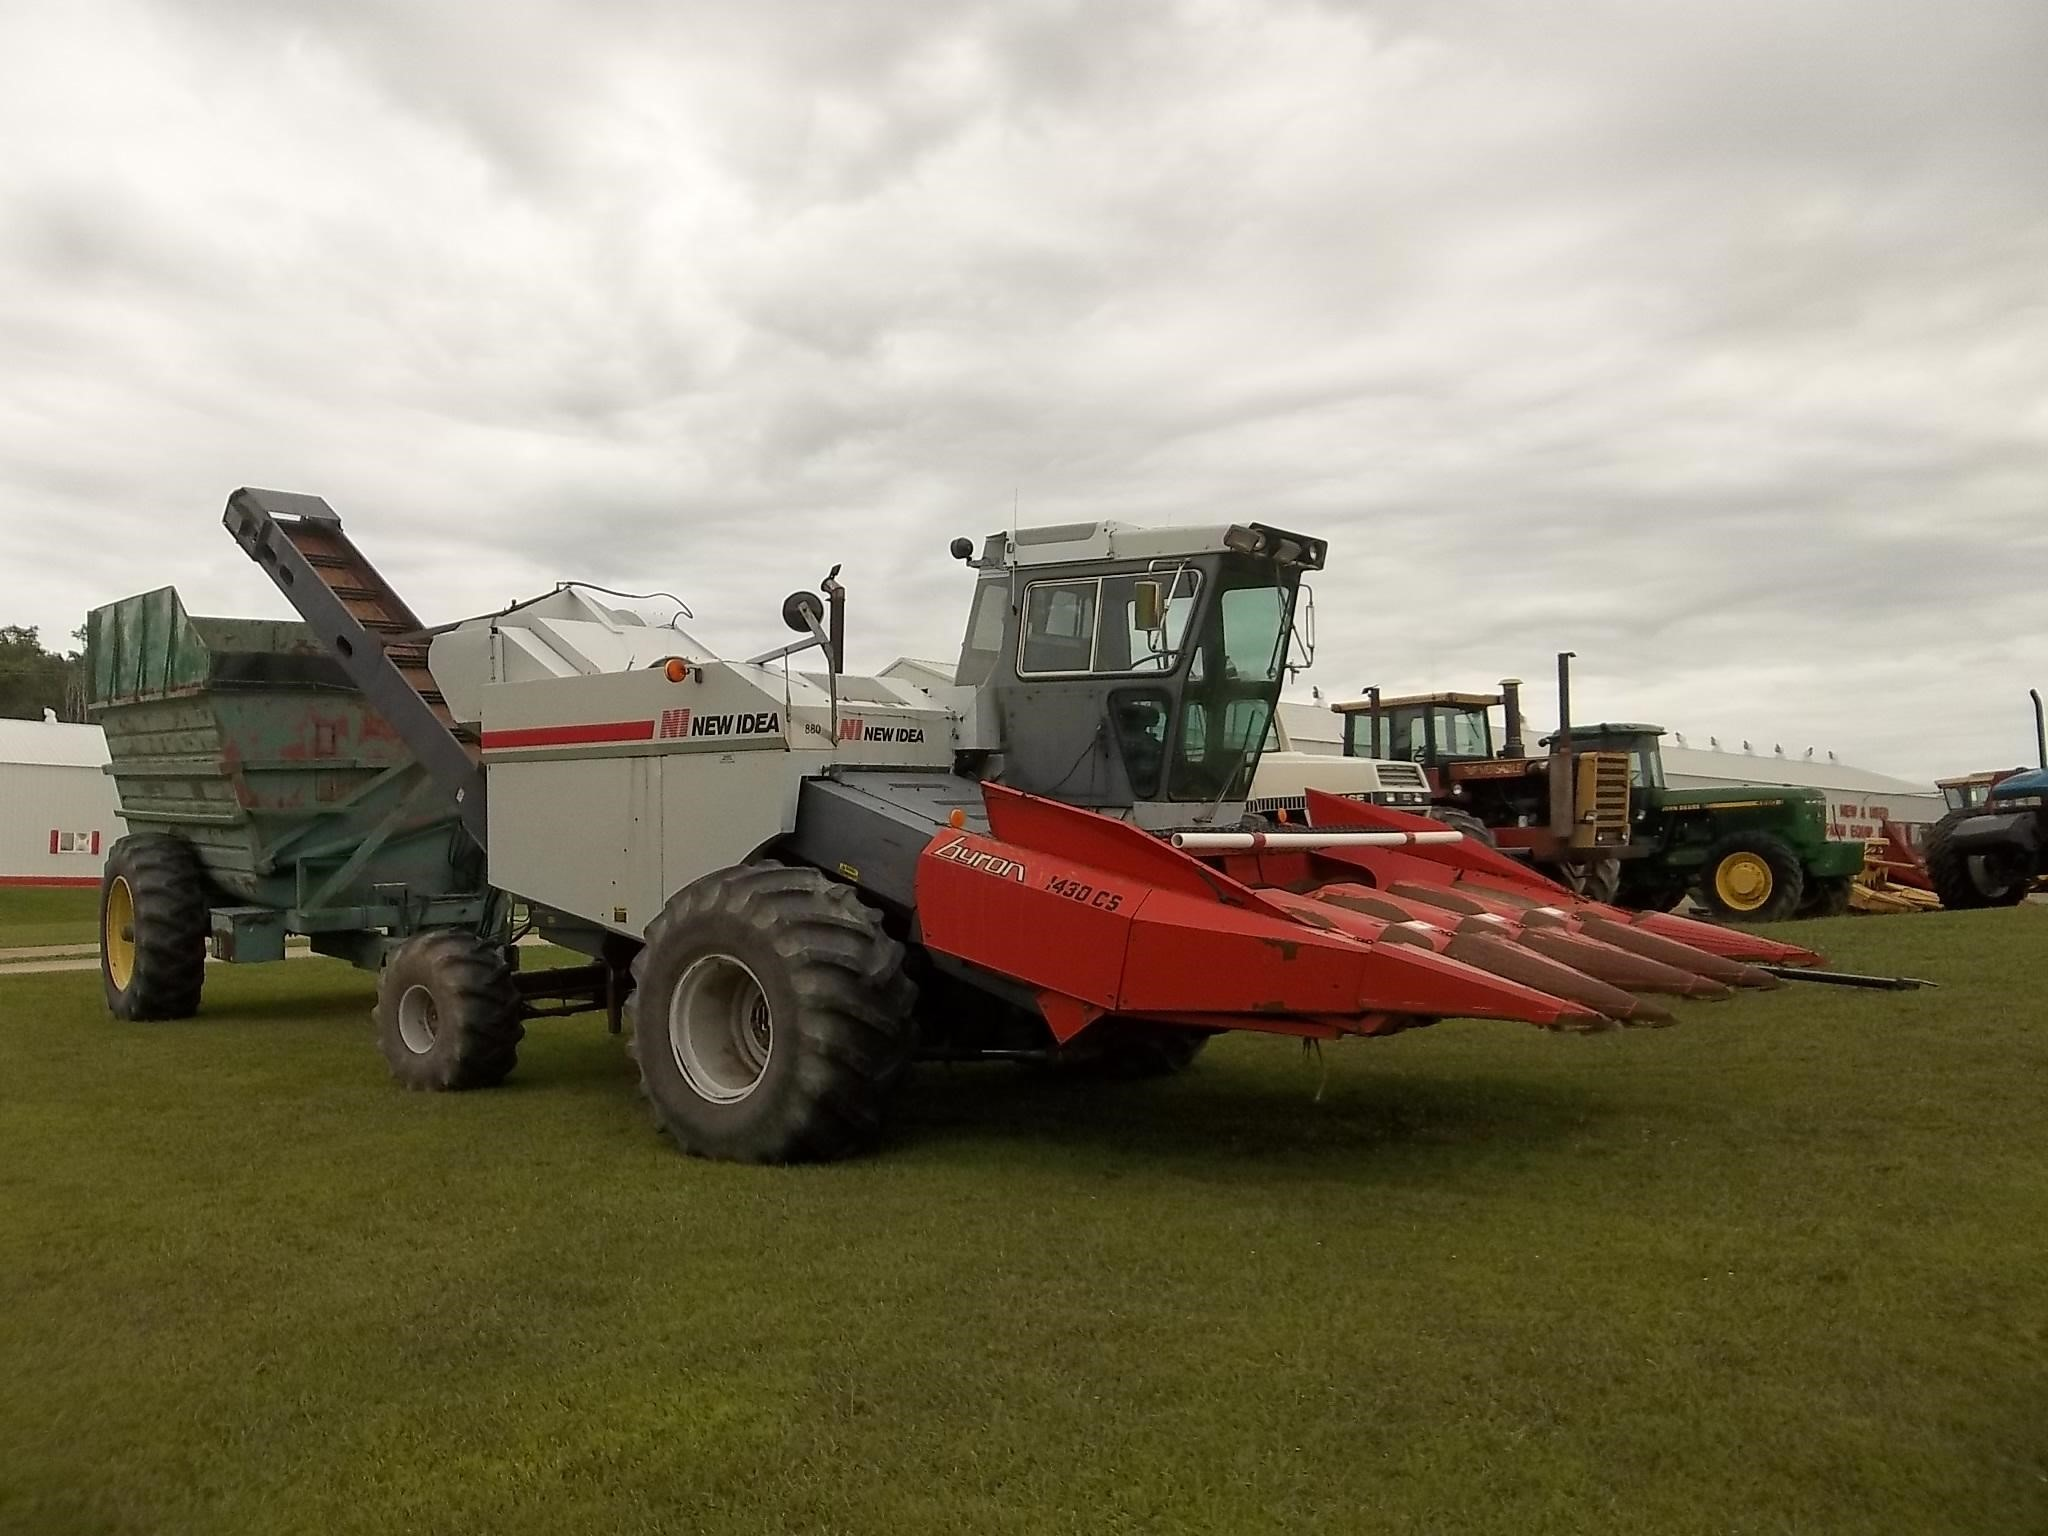 1989 New Idea 803C Self-Propelled Forage Harvester